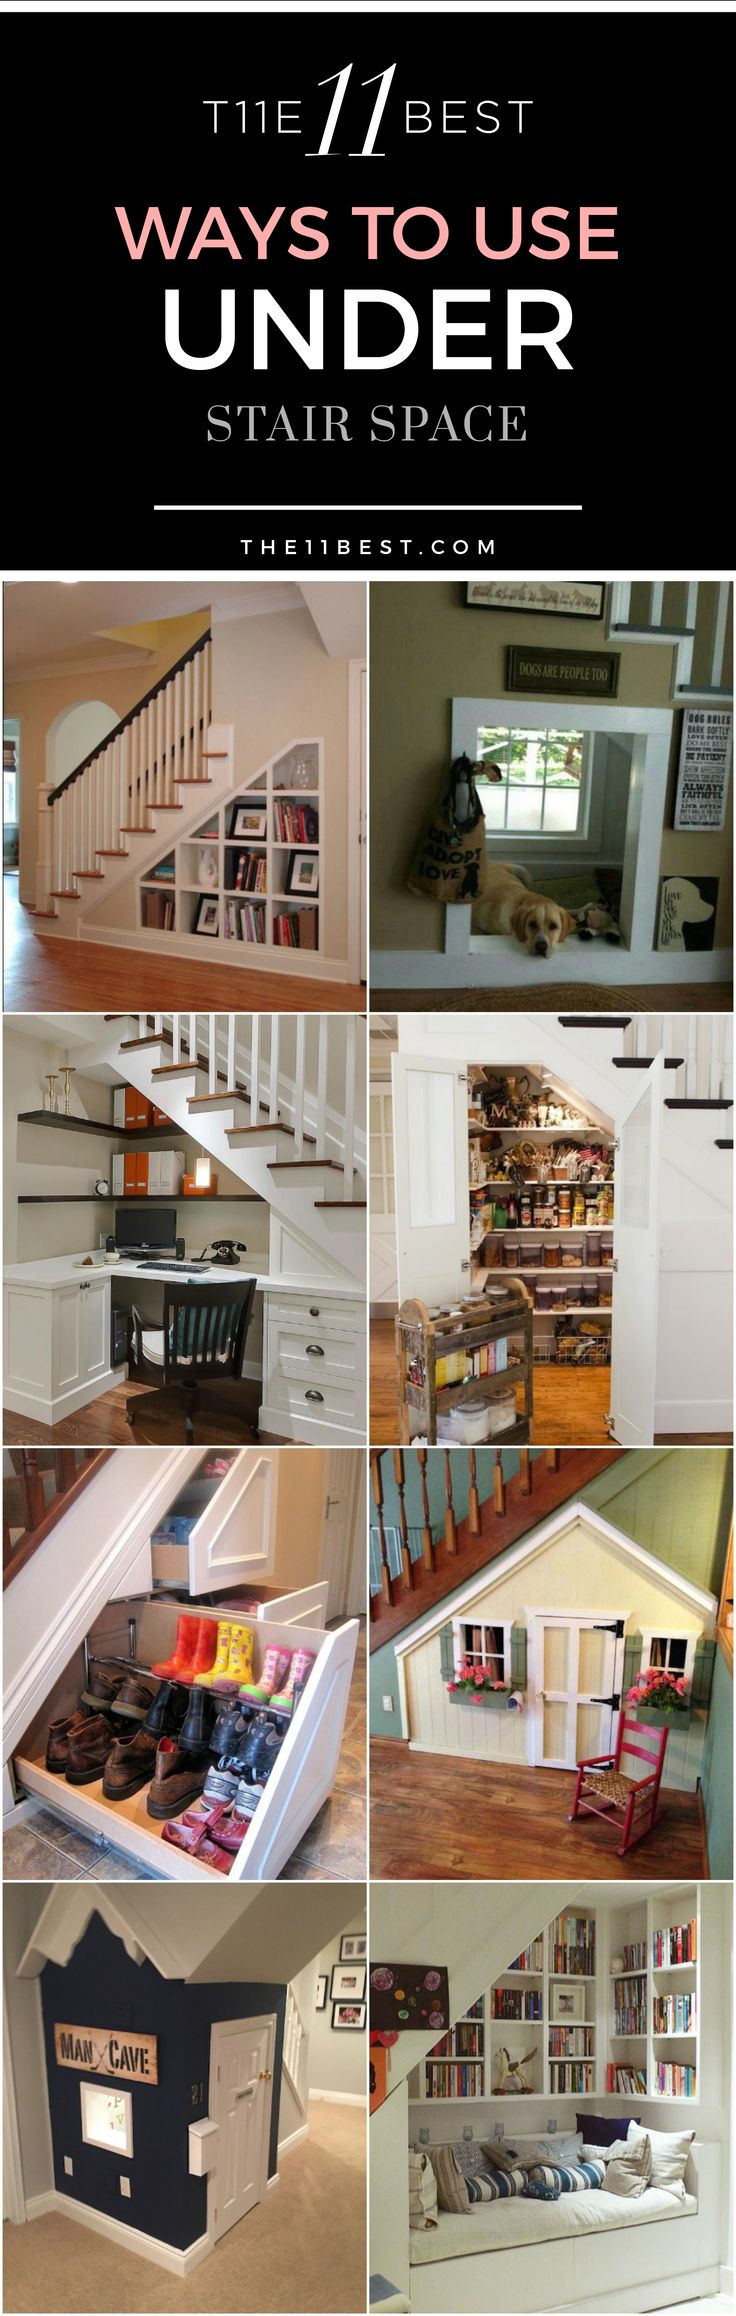 The 25 best ideas about bar under stairs on pinterest under the stairs under basement stairs - Basement stair ideas pinterest ...